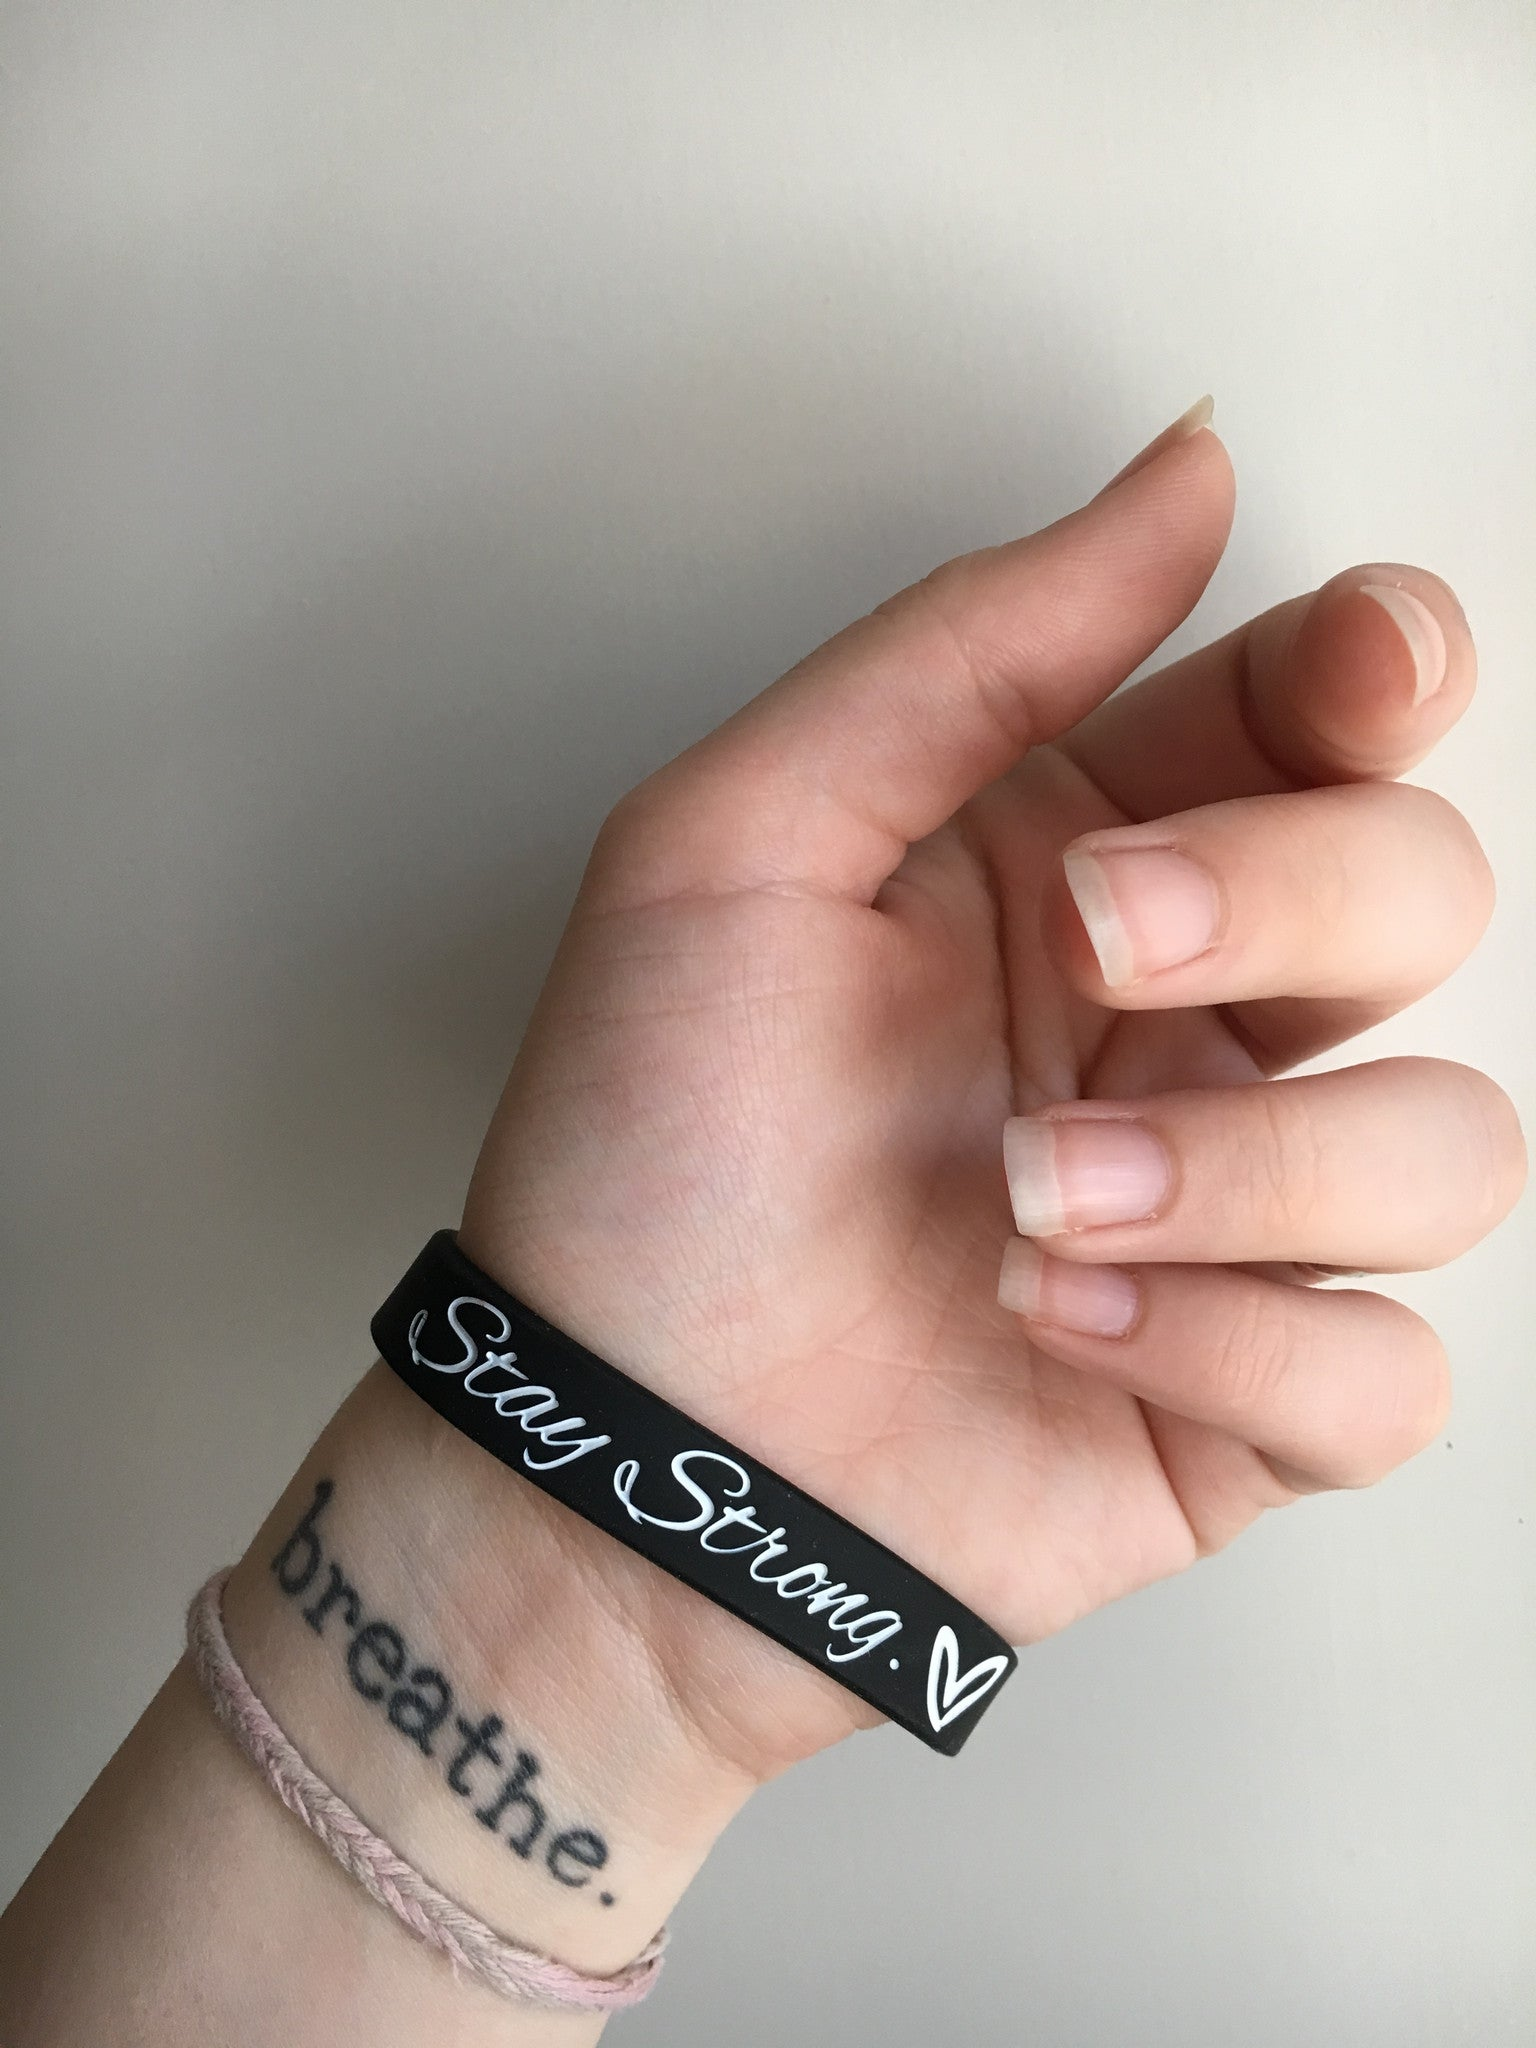 """Stay Strong.♡"" Self Harm Prevention Bracelet ♥ - Underlying Beauty - 4"